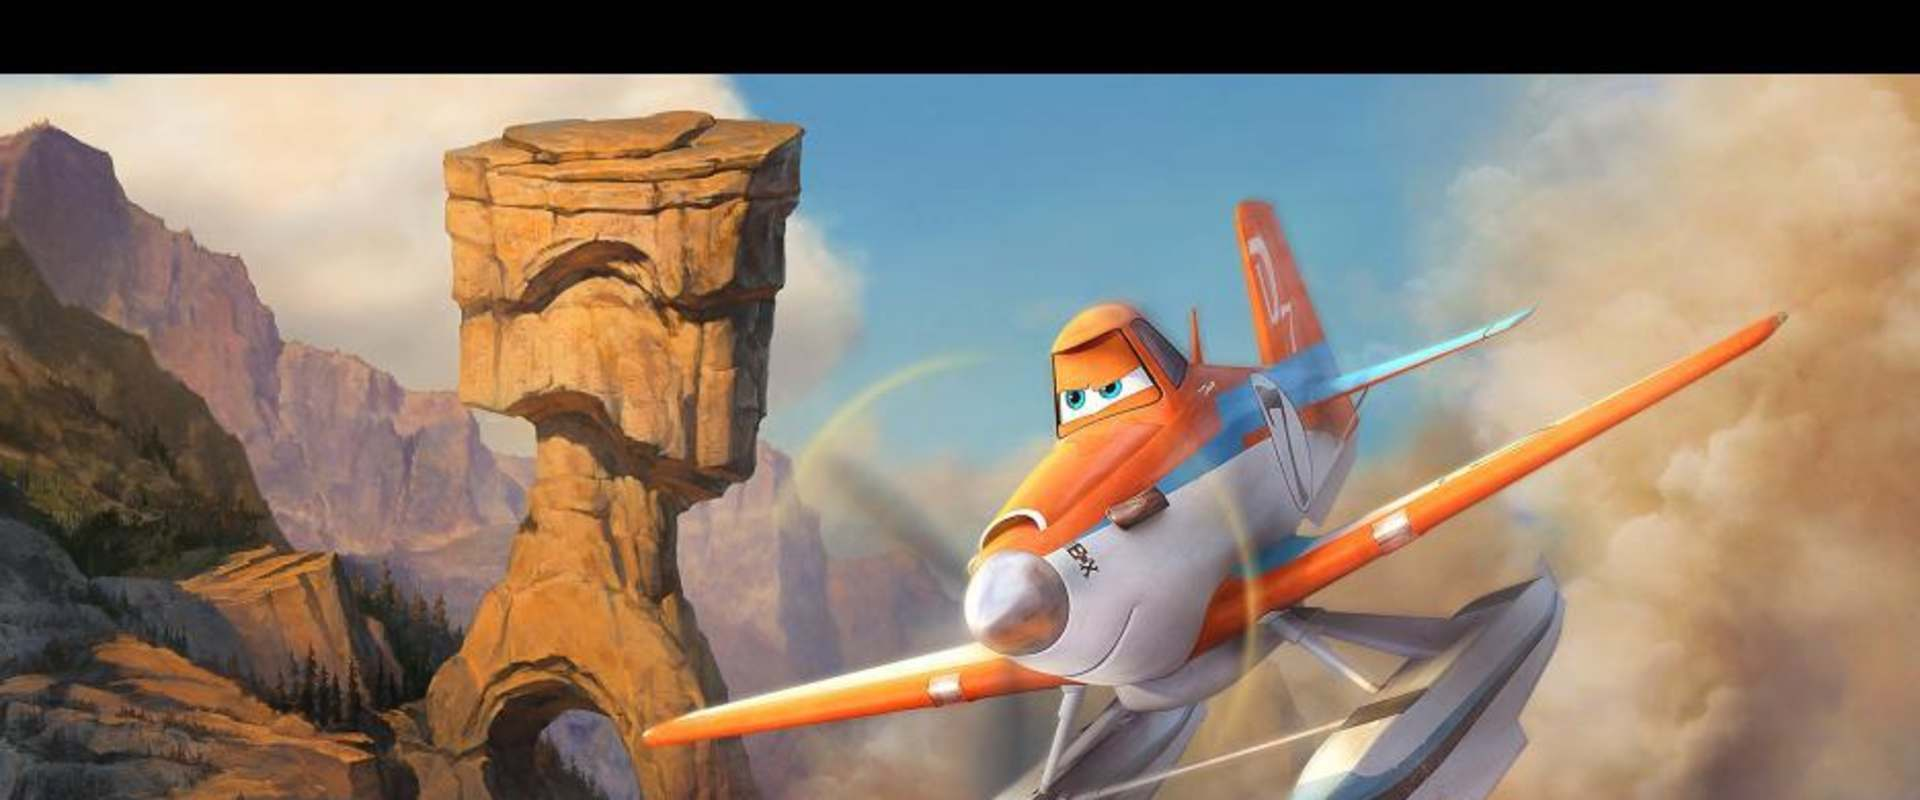 Planes: Fire & Rescue background 2